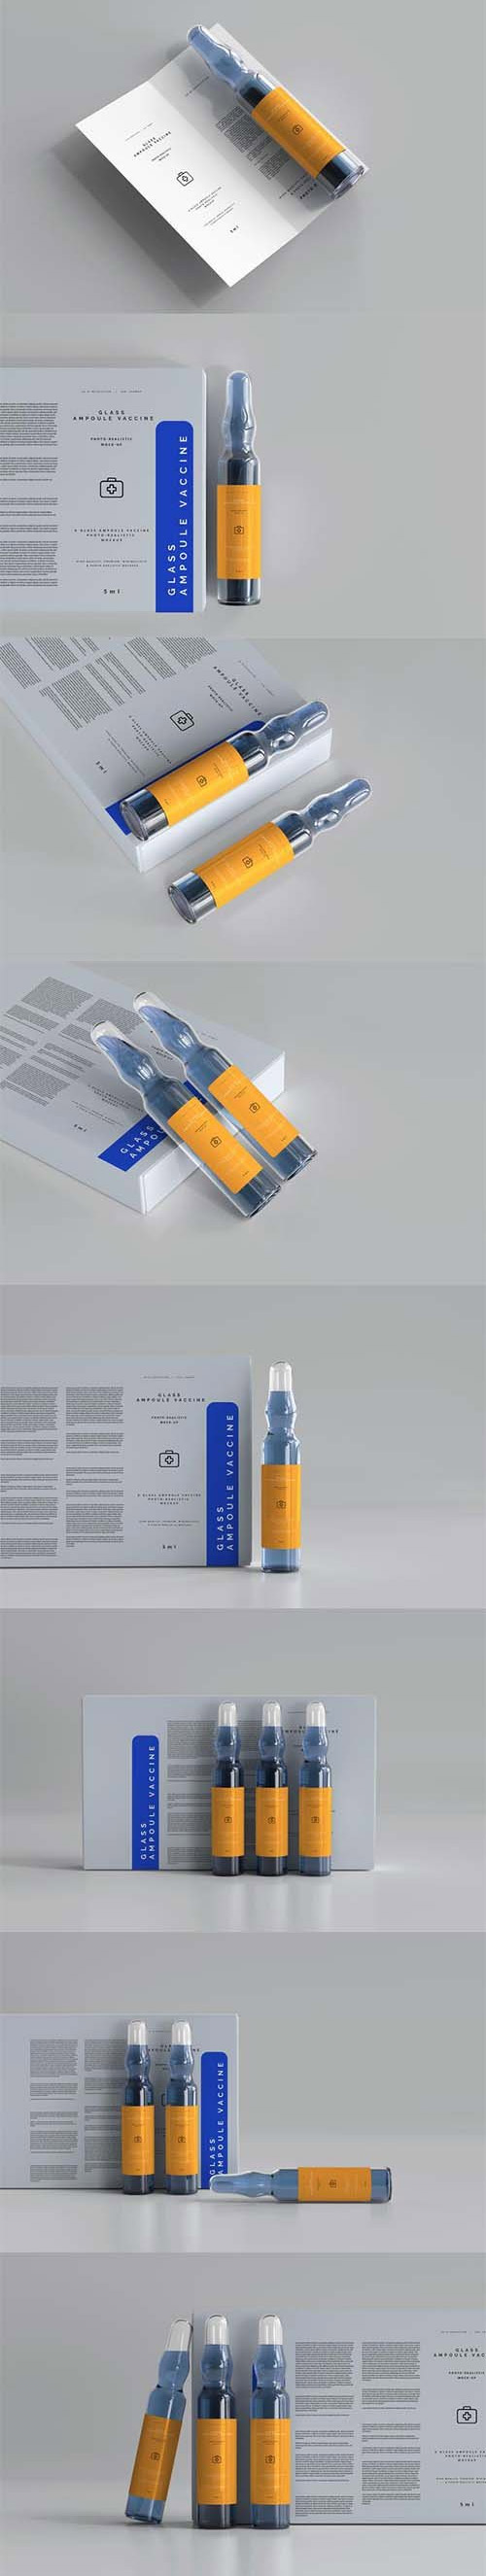 Glass ampoule vaccine with bi-fold brochure and box mockup